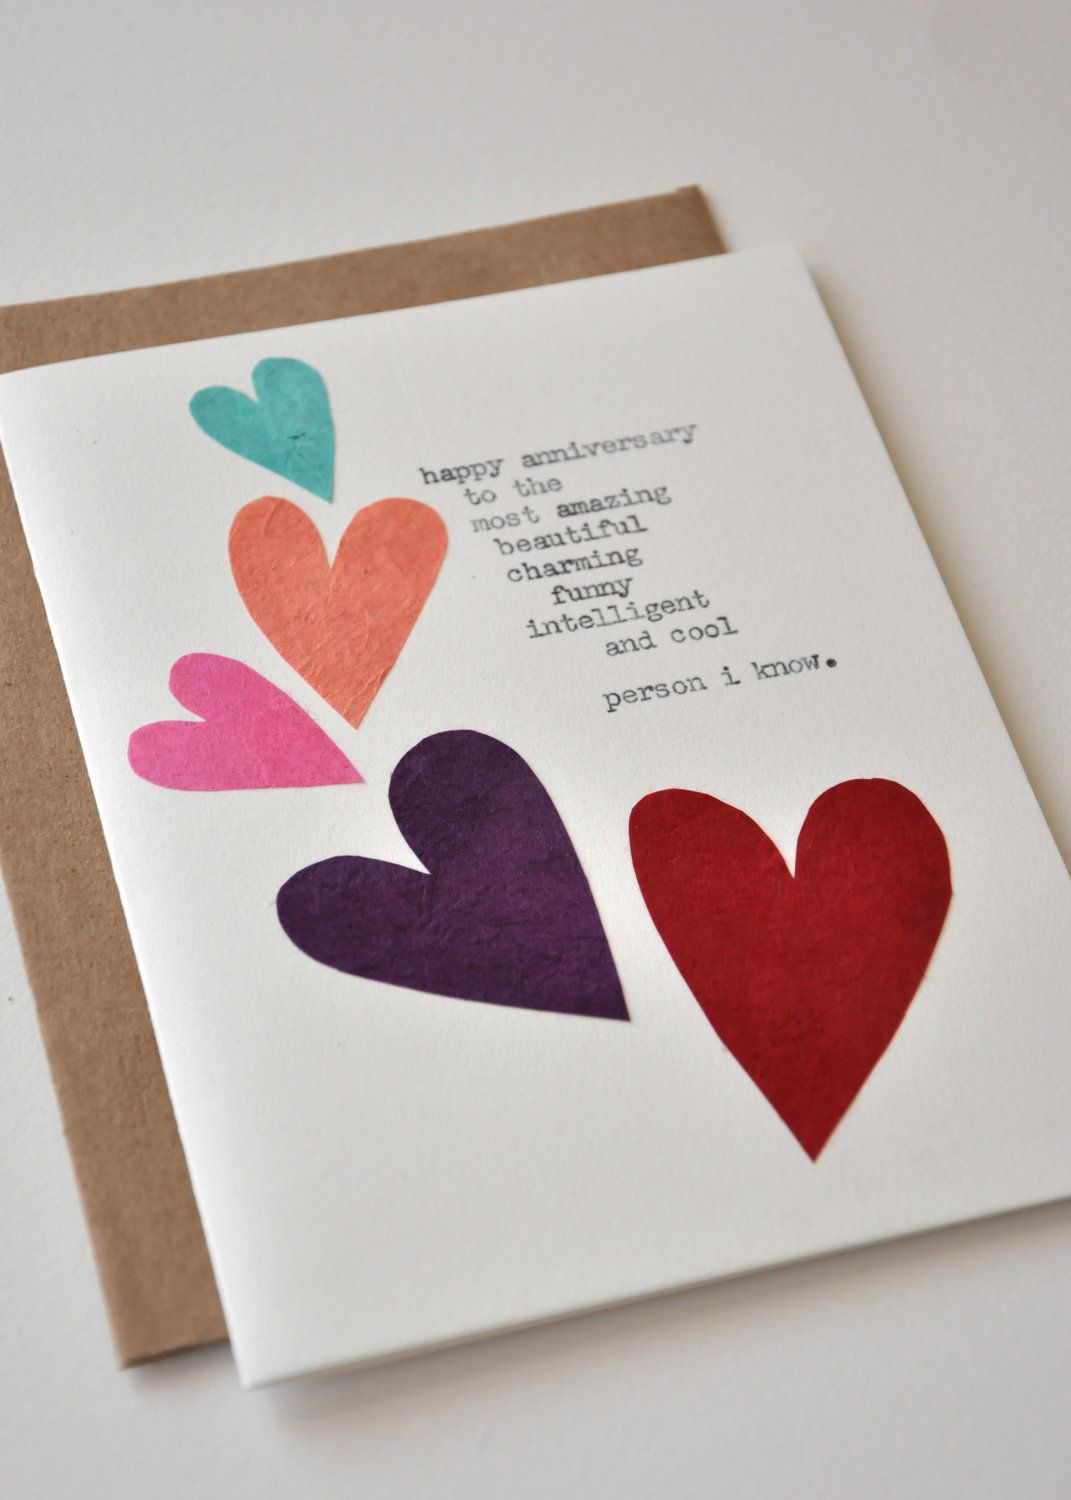 Awe Inspiring Handmade Hearts Birthday Card For Boyfriend Or Husband With Lovely Personalised Birthday Cards Paralily Jamesorg